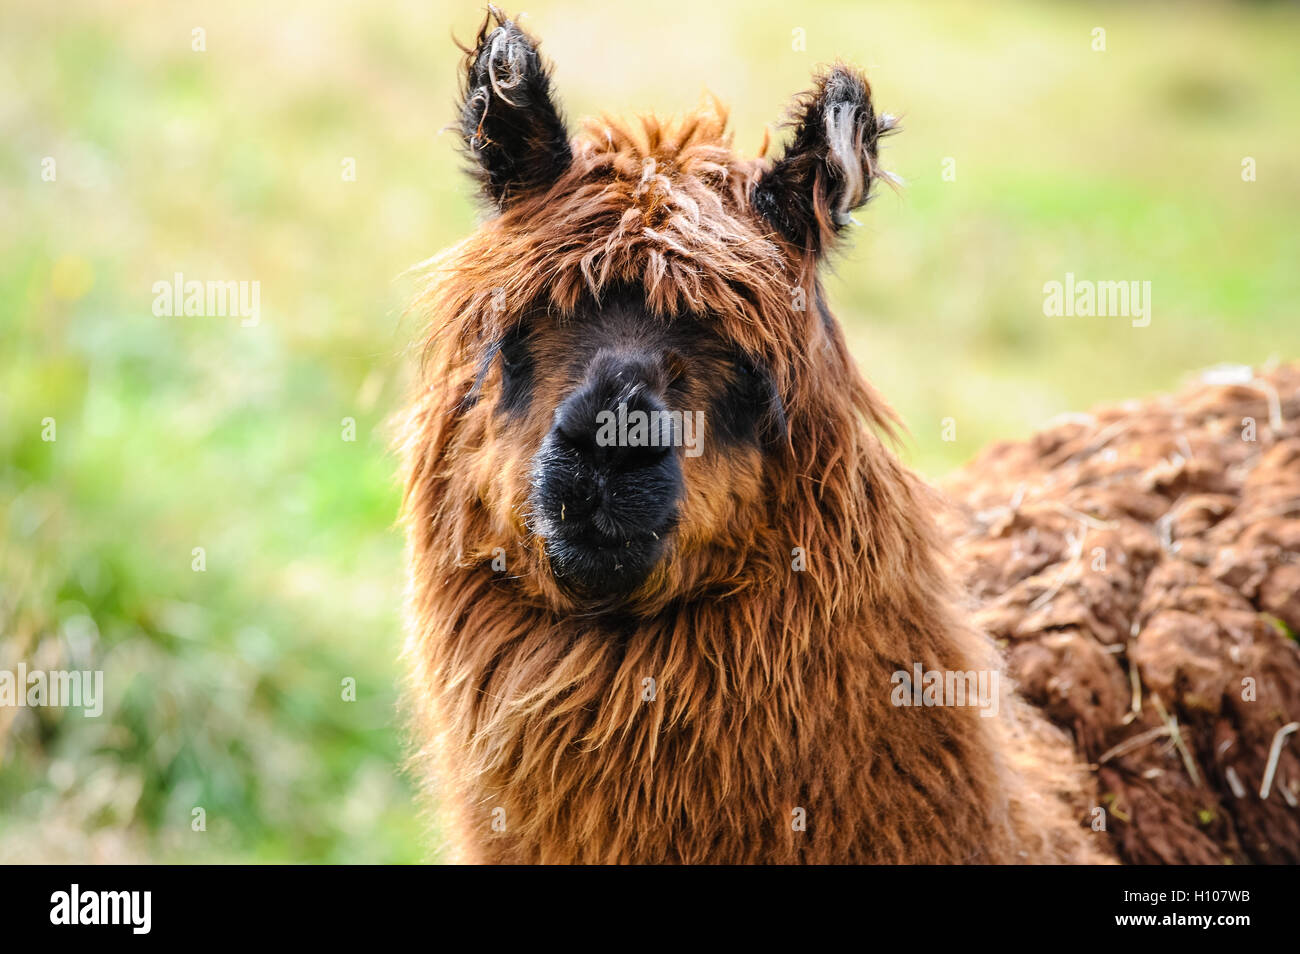 Norway, Oppland, Valdres. Domestic Lama at Beitostølen. - Stock Image